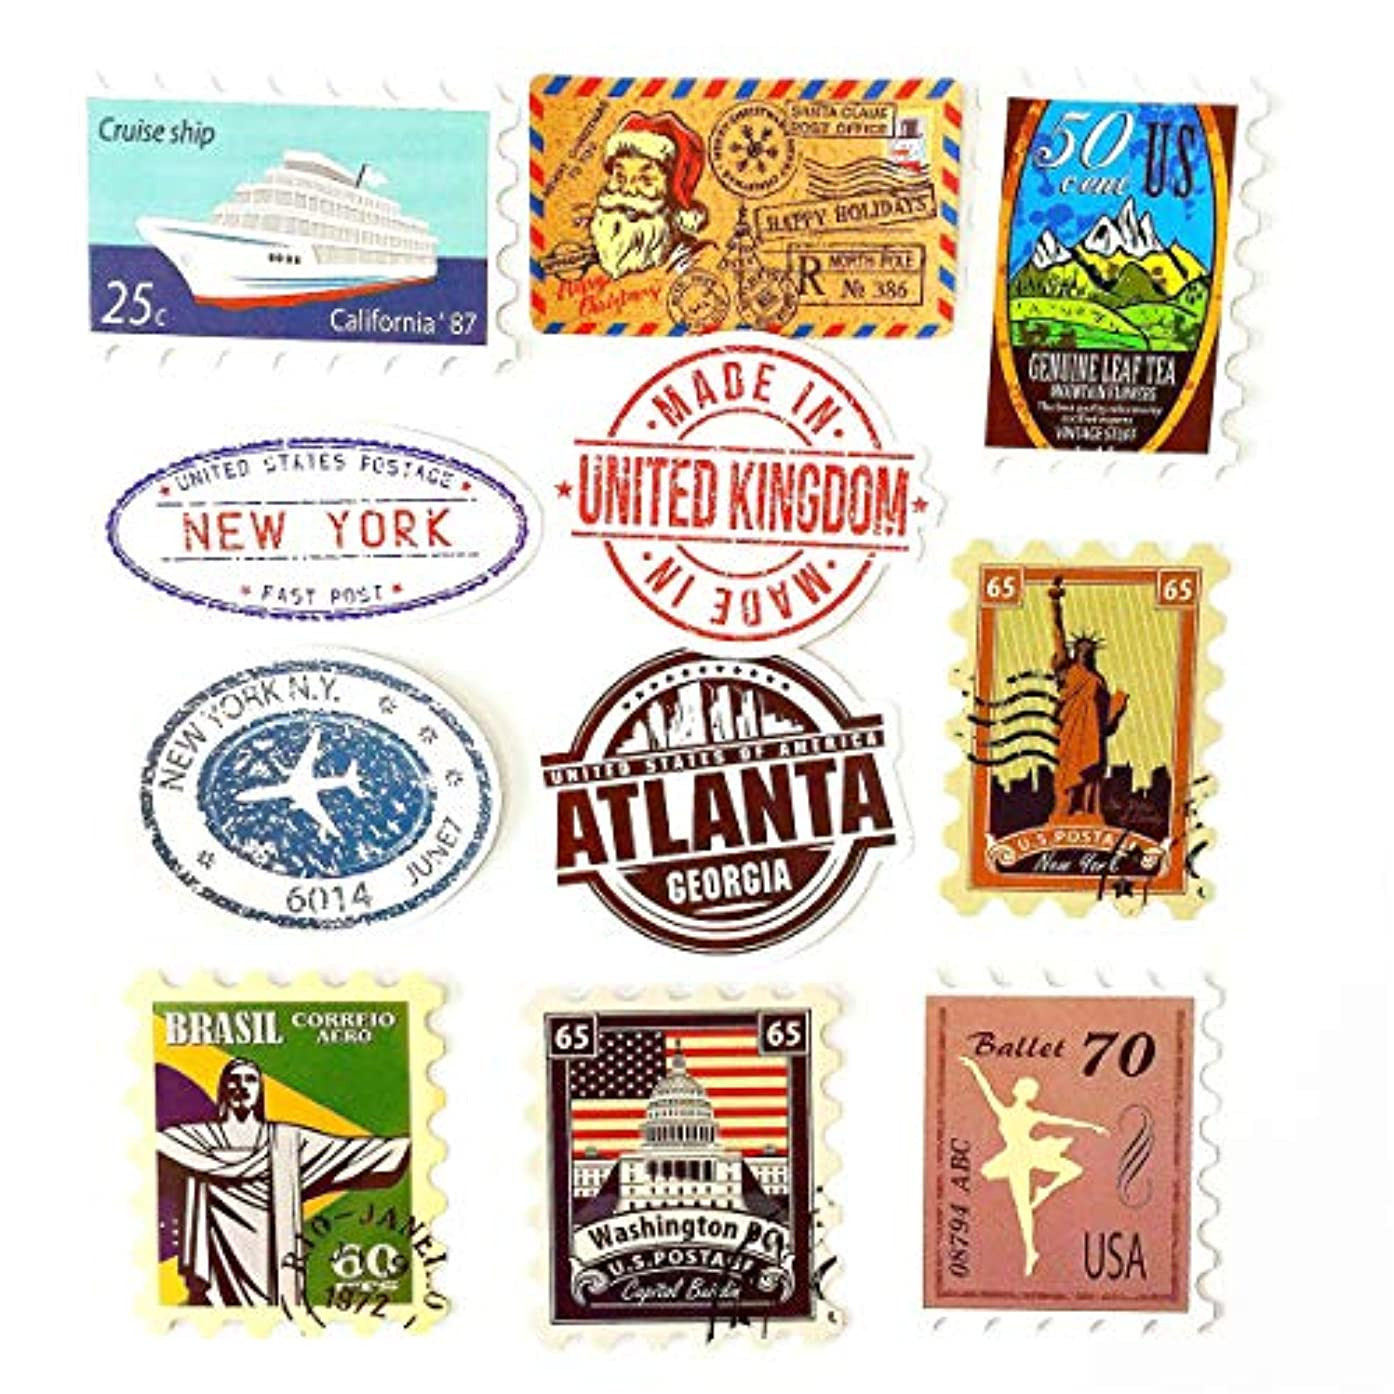 Cool Stickers (50Pcs no Repeat) Stamp Nation History US Statue of Liberty White House Pompeii Taj Mahal Office Stickers Pack for Water Bottle Laptop Skateboard Luggage Party Decor Stickers Waterproof